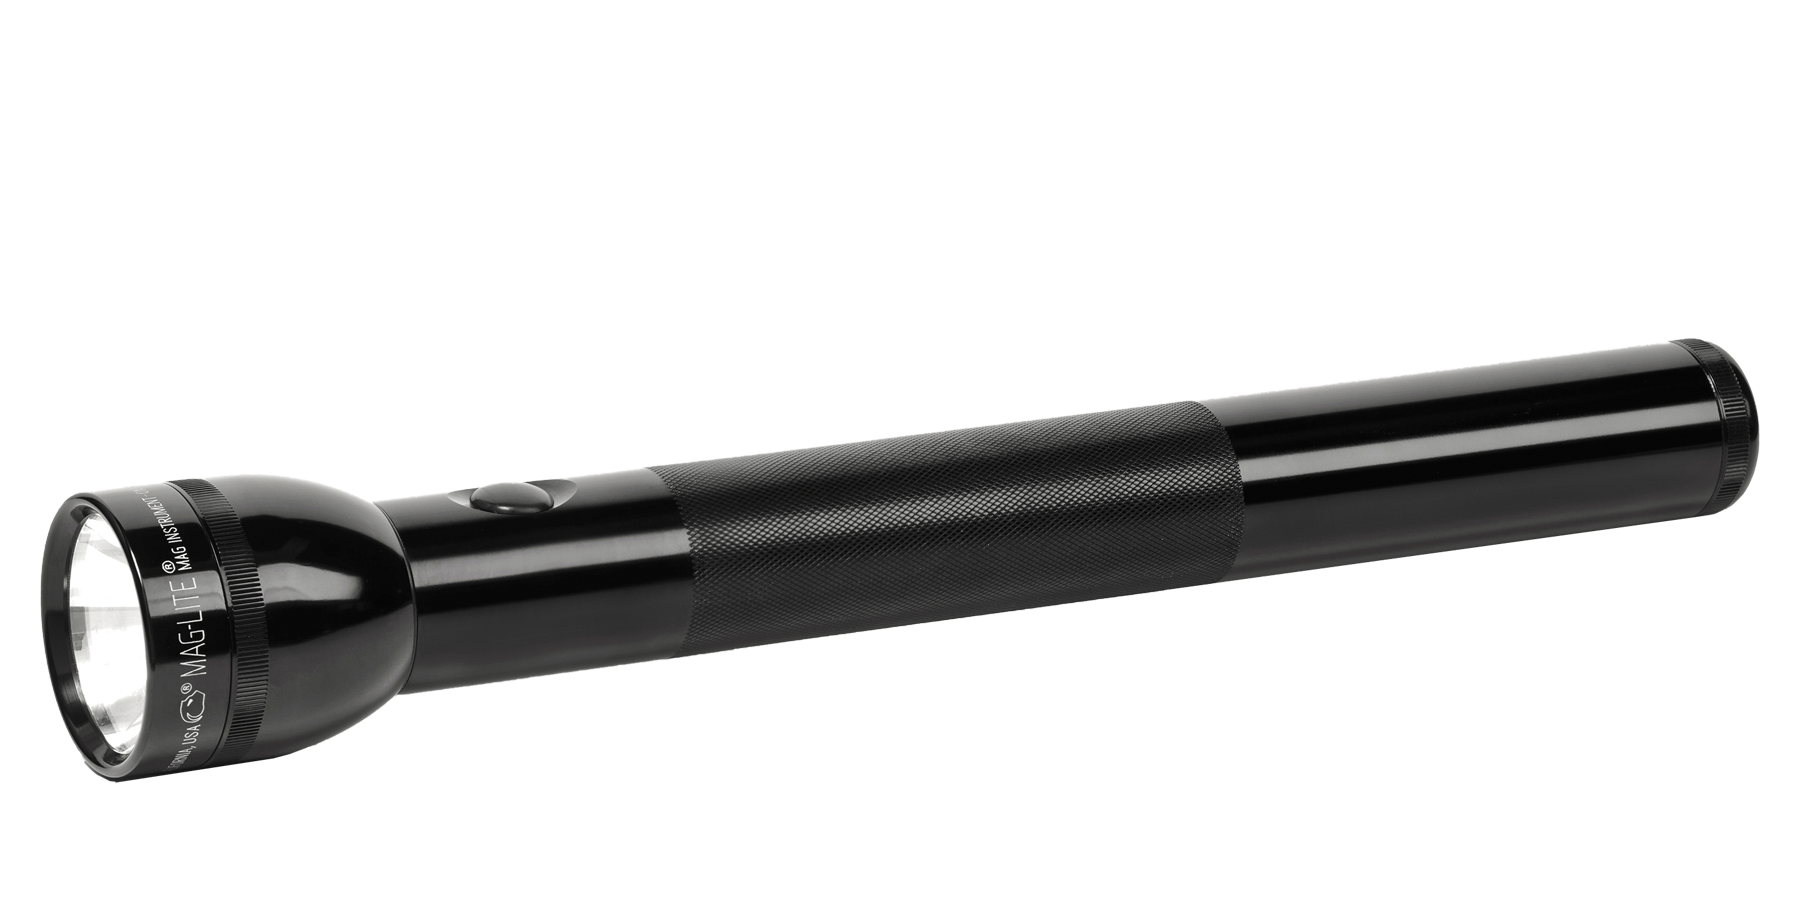 Maglite 4D Cell